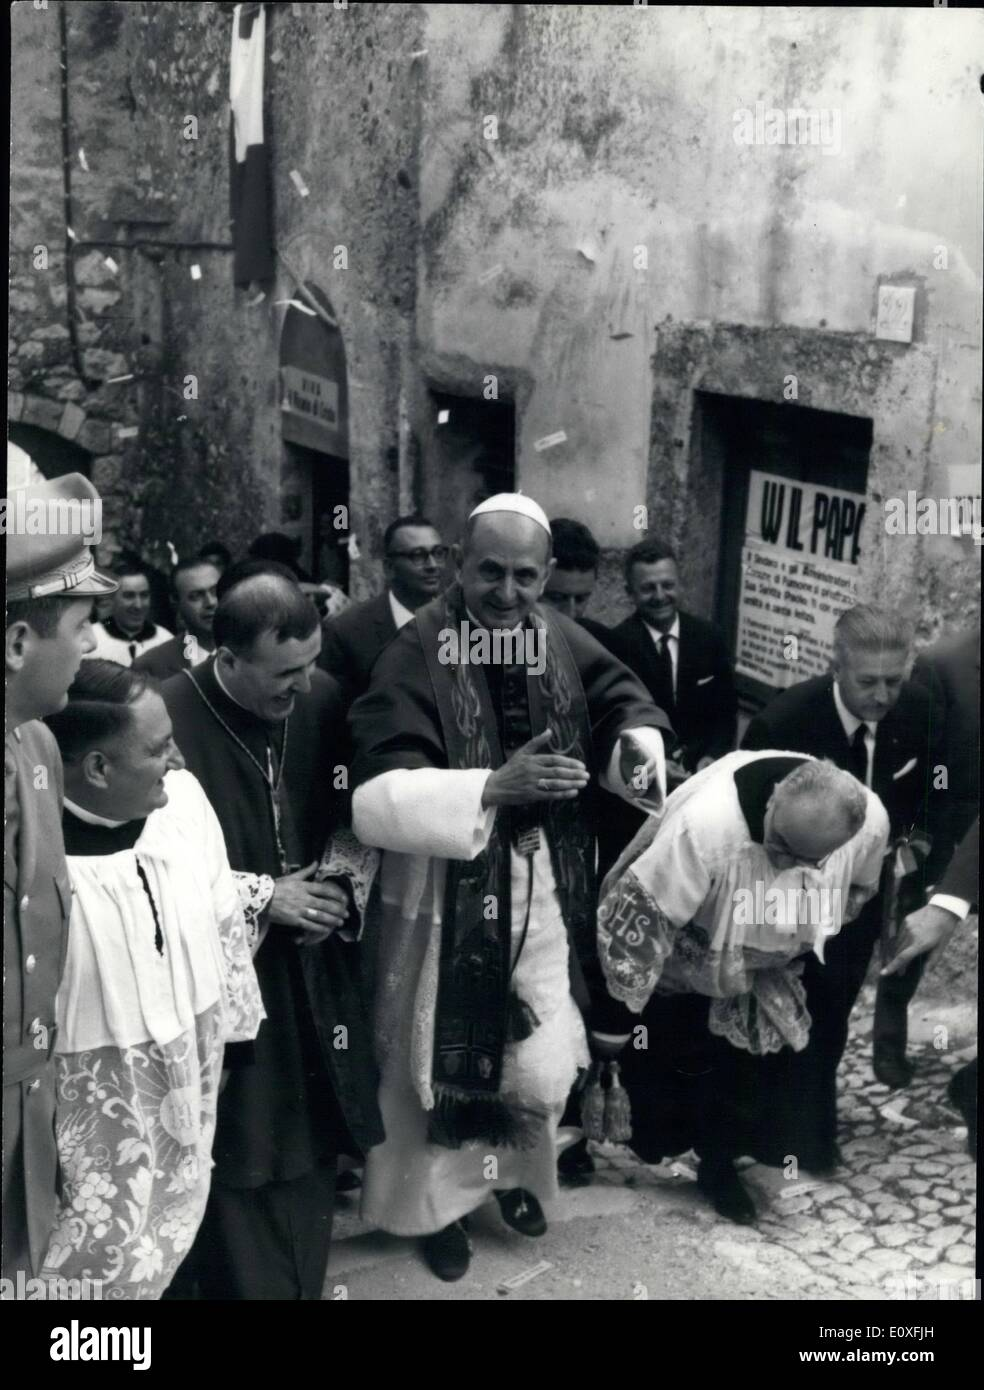 Sep. 09, 1966 - Rome: 1 Sept 1966. Pope Paul VI made a pilgrimage to Monte Fumone south of Rome to pay homage to the only Pope who never abdicated. Pope Paul VI visited today the shrine maintained in the castle to Saint Pepet Celestine, who was imprisoned and died in the castle on 19th of May 1296 after abdicating as Pope Celestine V. Pope Paul VI made the pilgrimage from his summer residence at Castel Gandolfo. Monte Fumone is about 50 miles south of Rome on the edge of the Abruzzi hills where Saint Peter Celestine was Benedictine hermit monk before he was elected in 1294 - Stock Image